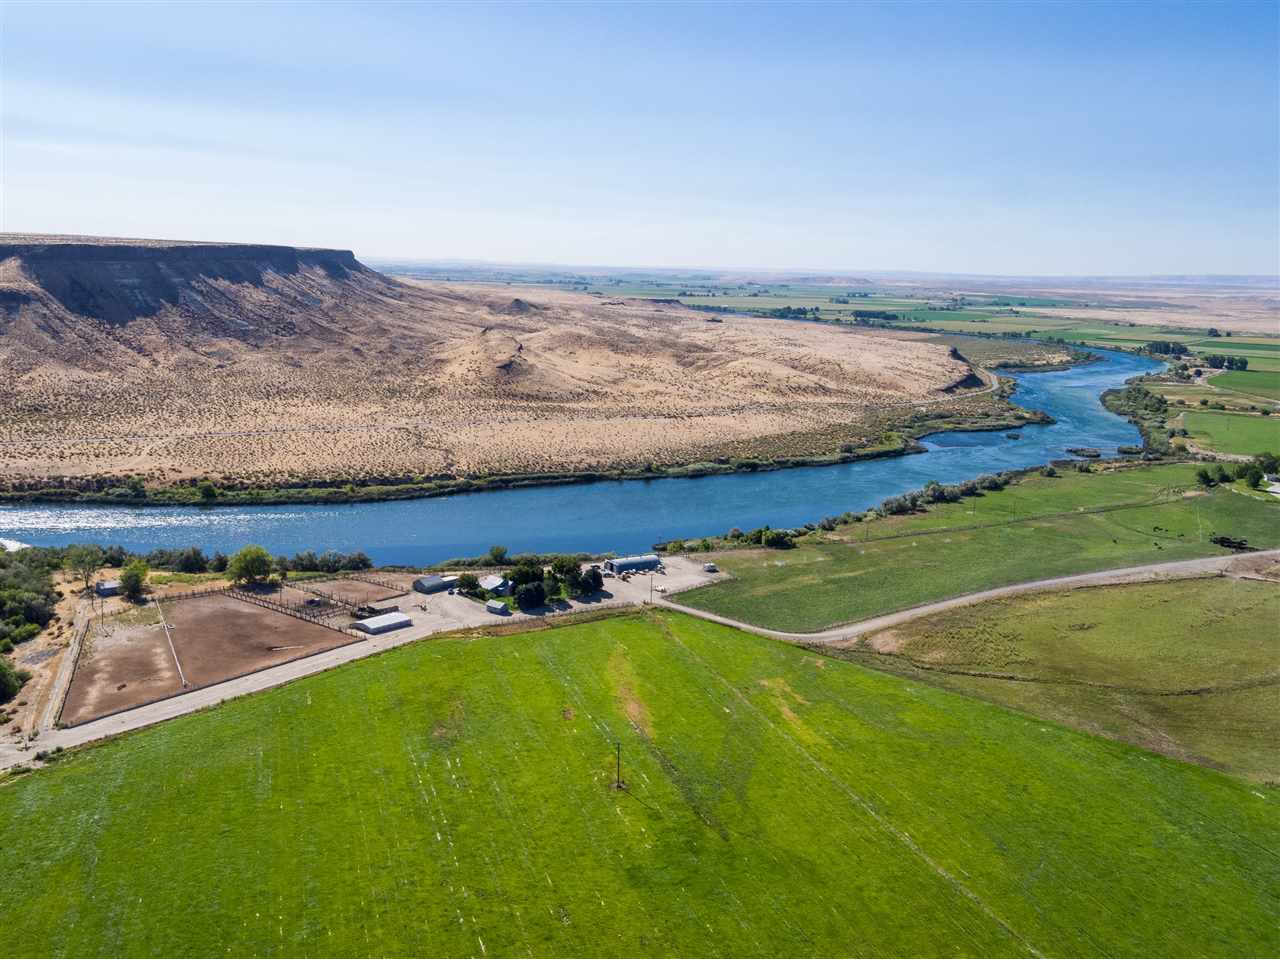 Farm / Ranch for Sale at Snake River Farm Grand View, Idaho 83624